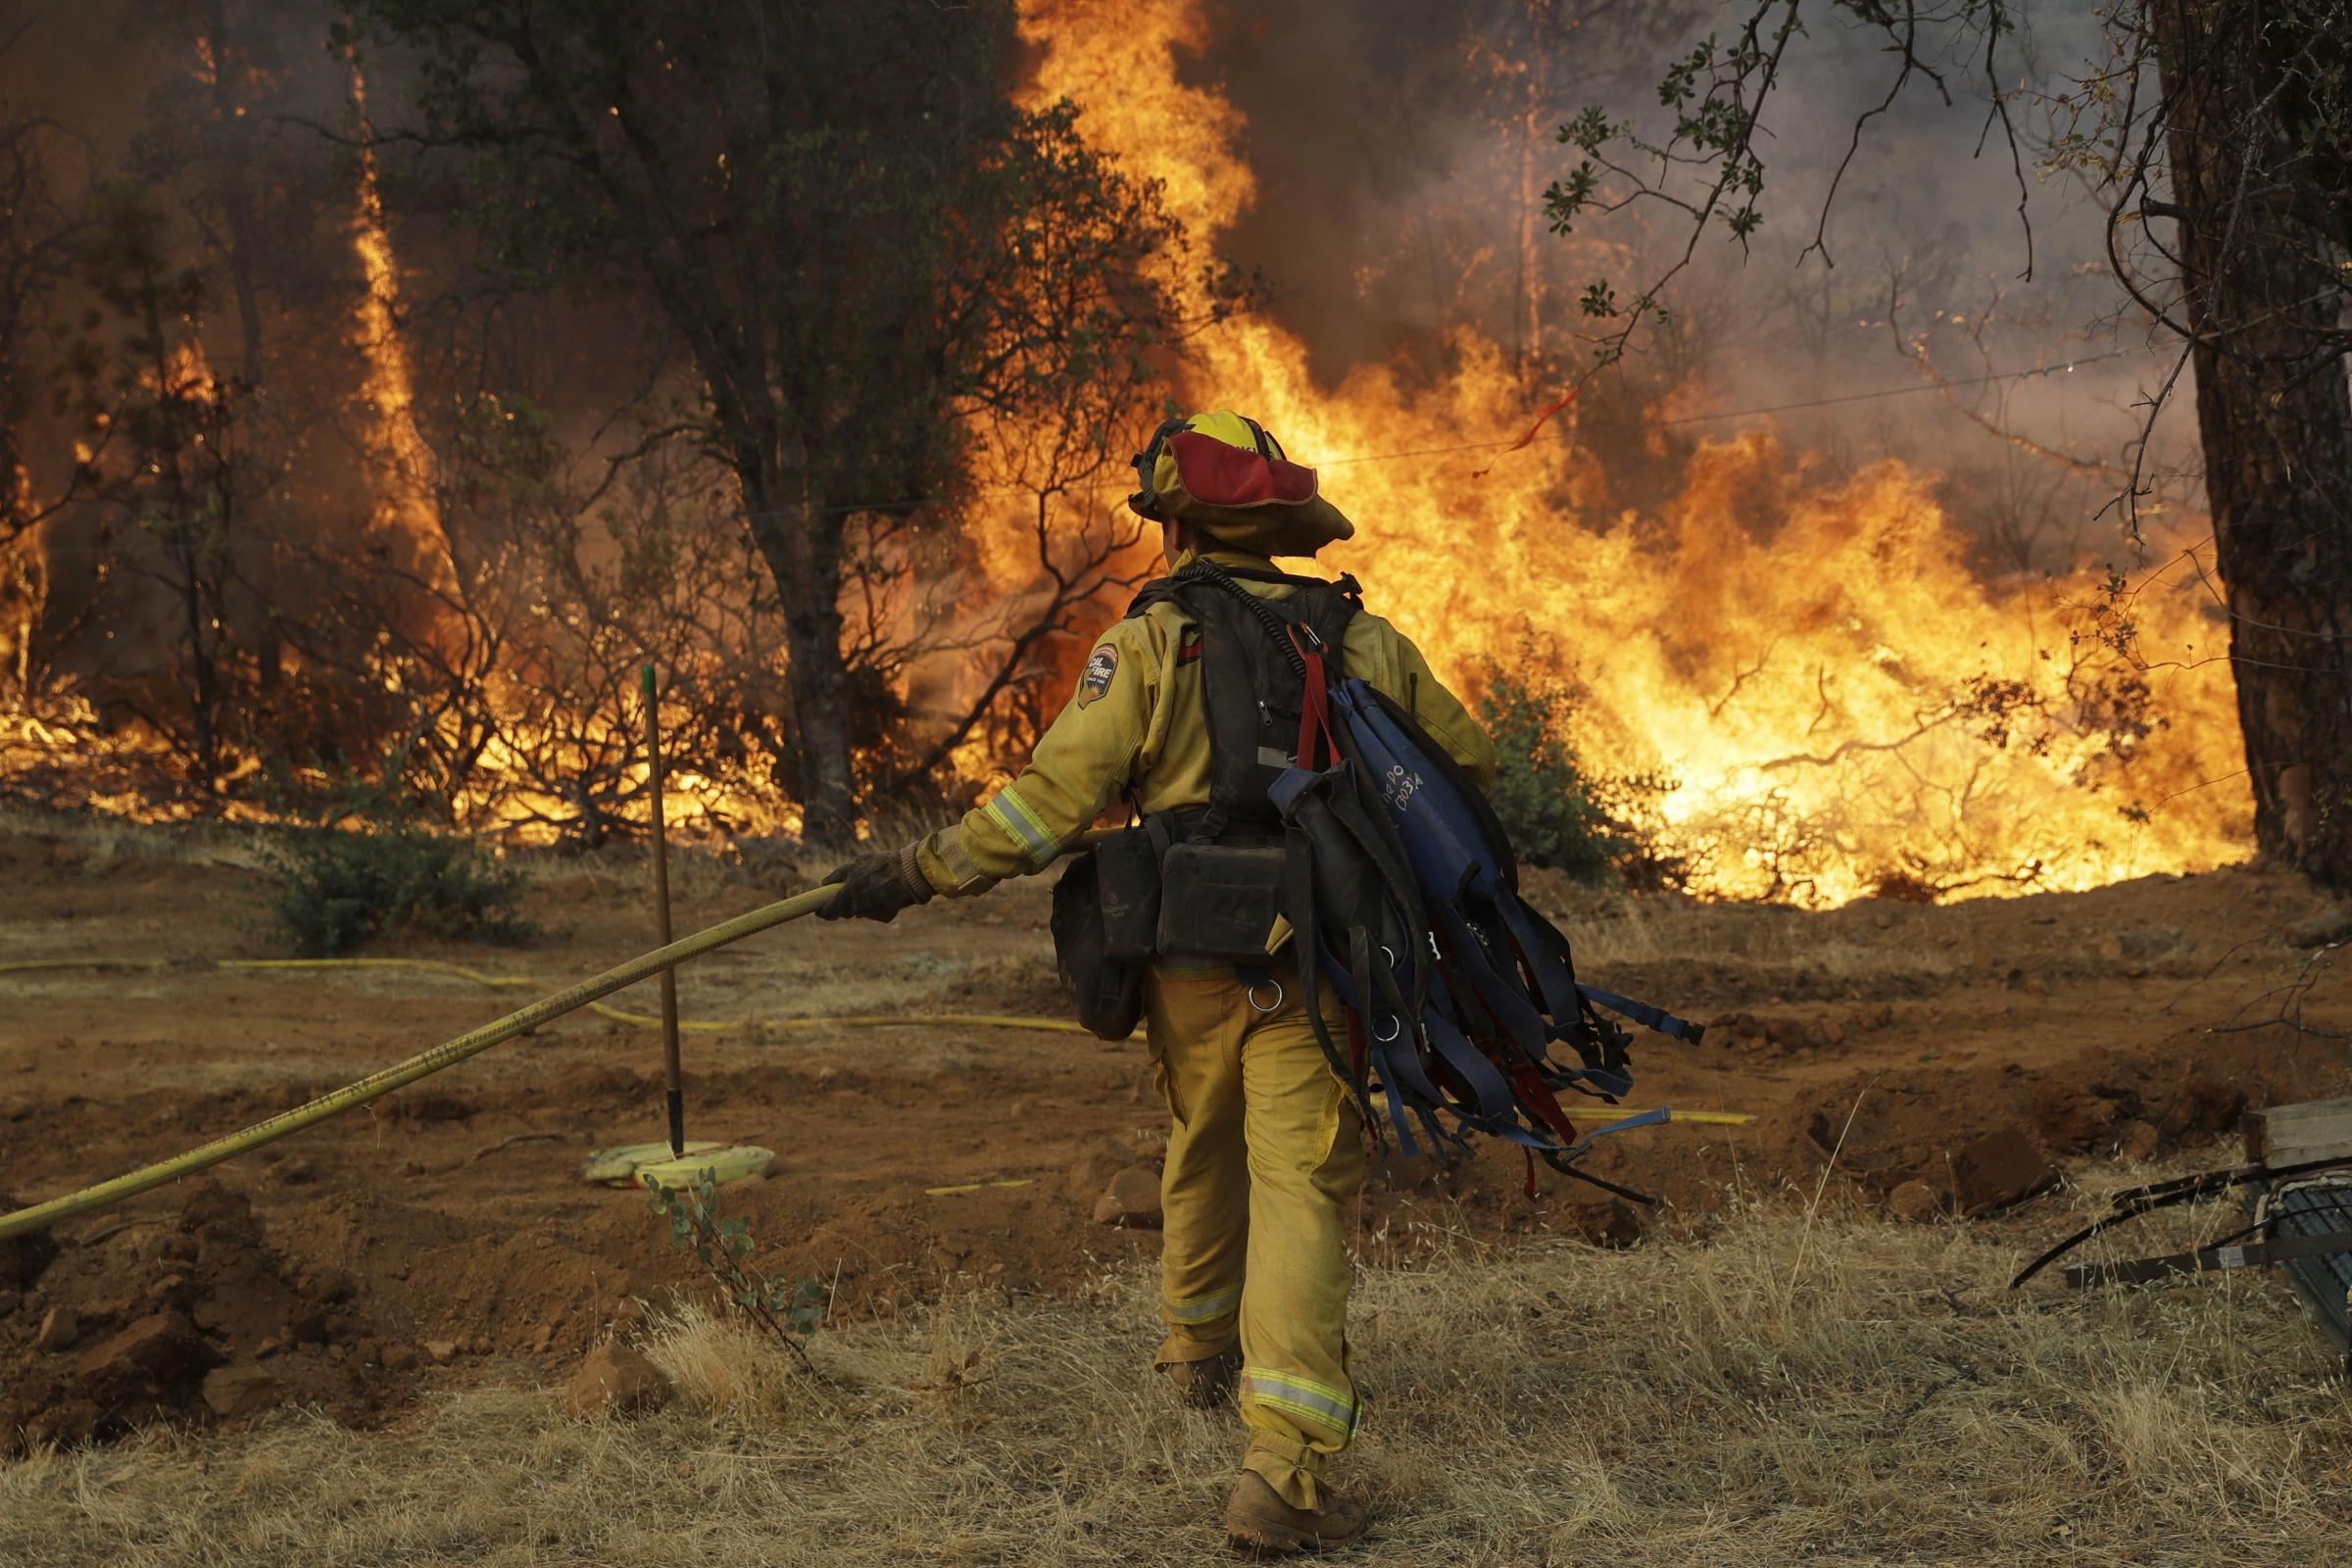 Thousands Flee as Wildfire Ravages California